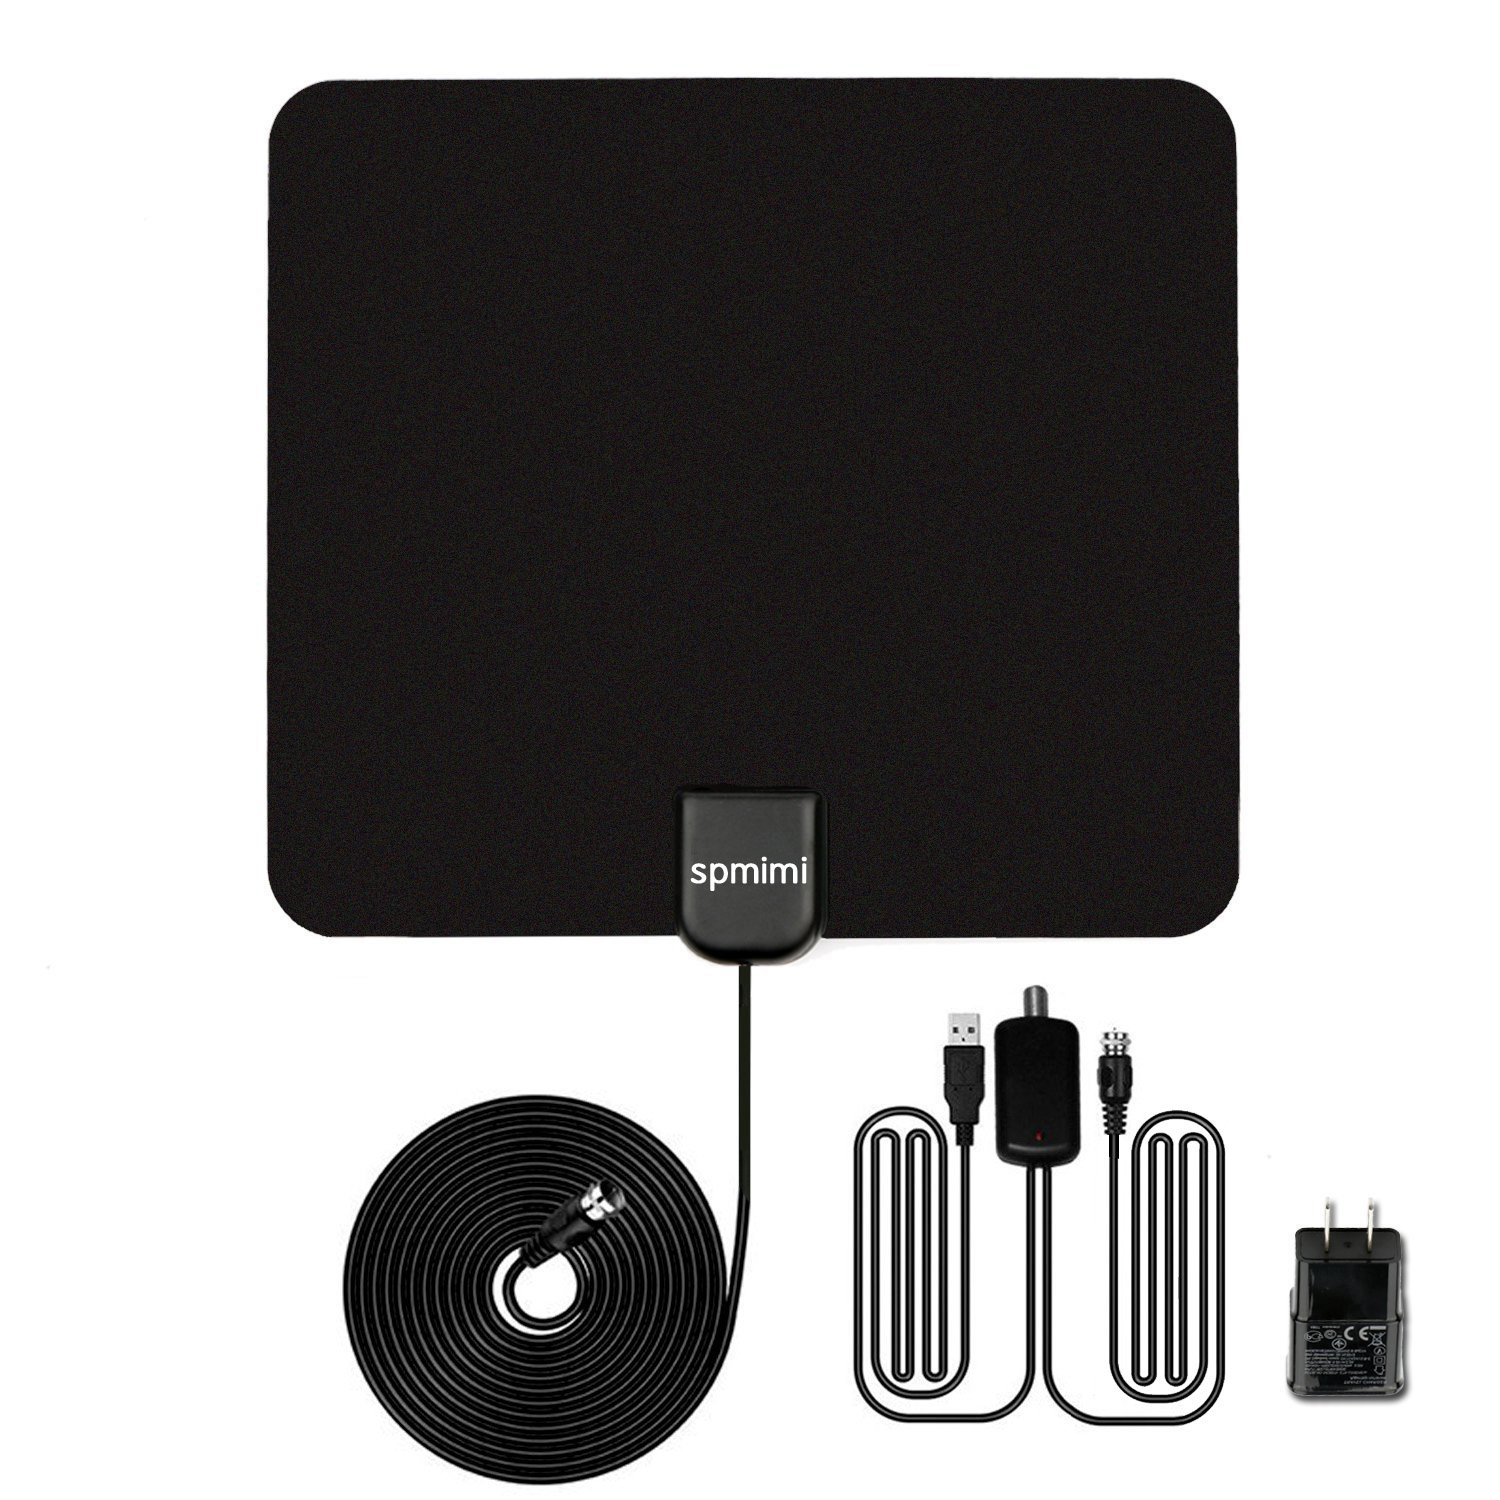 Indoor TV Antenna 50 Mile Range with Detachable Amplifier HDTV Indoor Antenna for High Reception antenna for TV Digital Tv Antenna